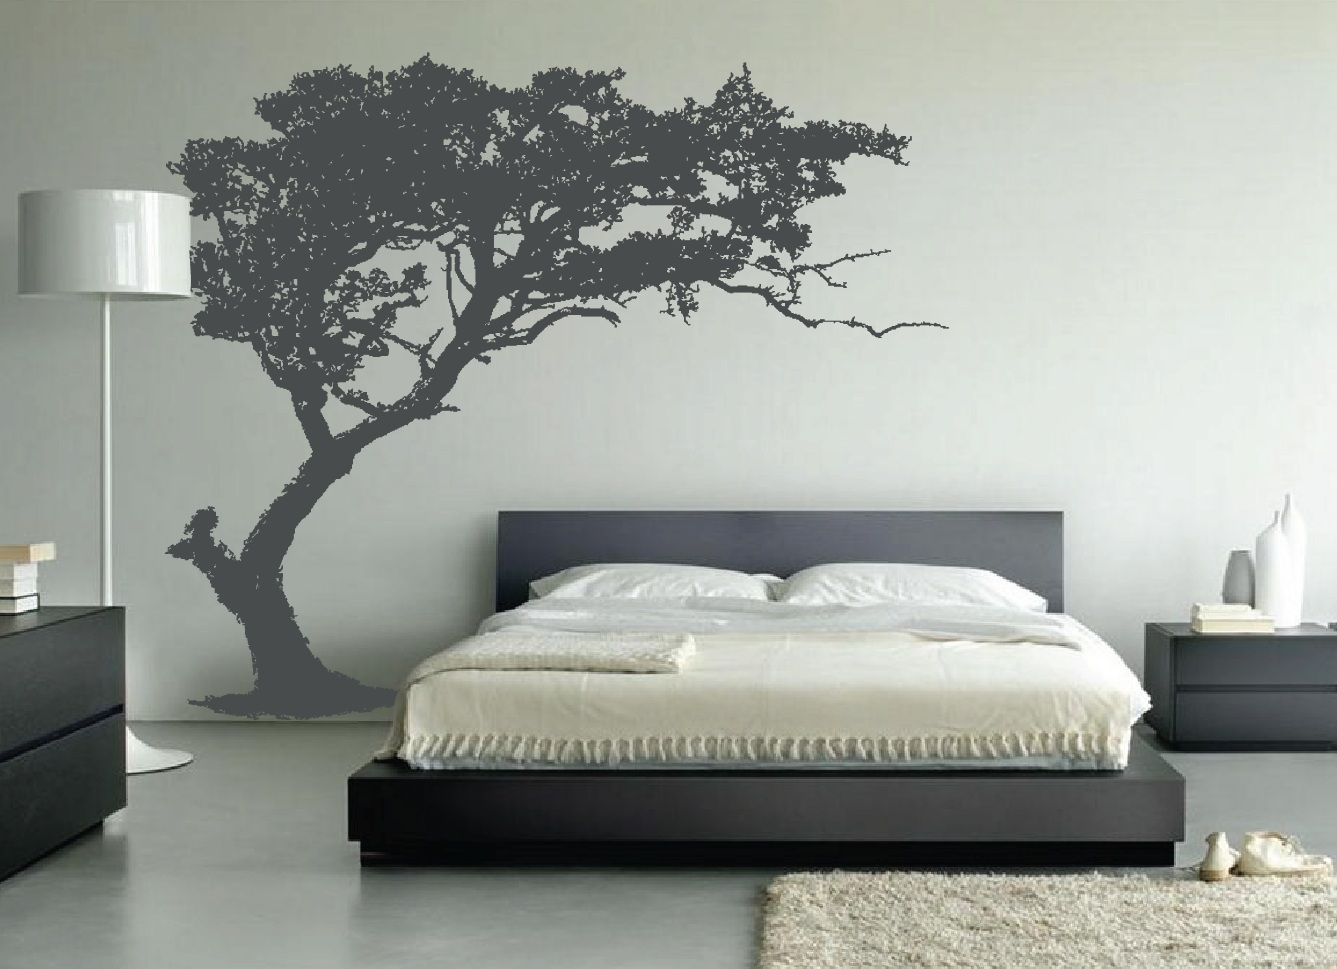 Wall Designs: Add Your Personalized Touch to It | My Decorative